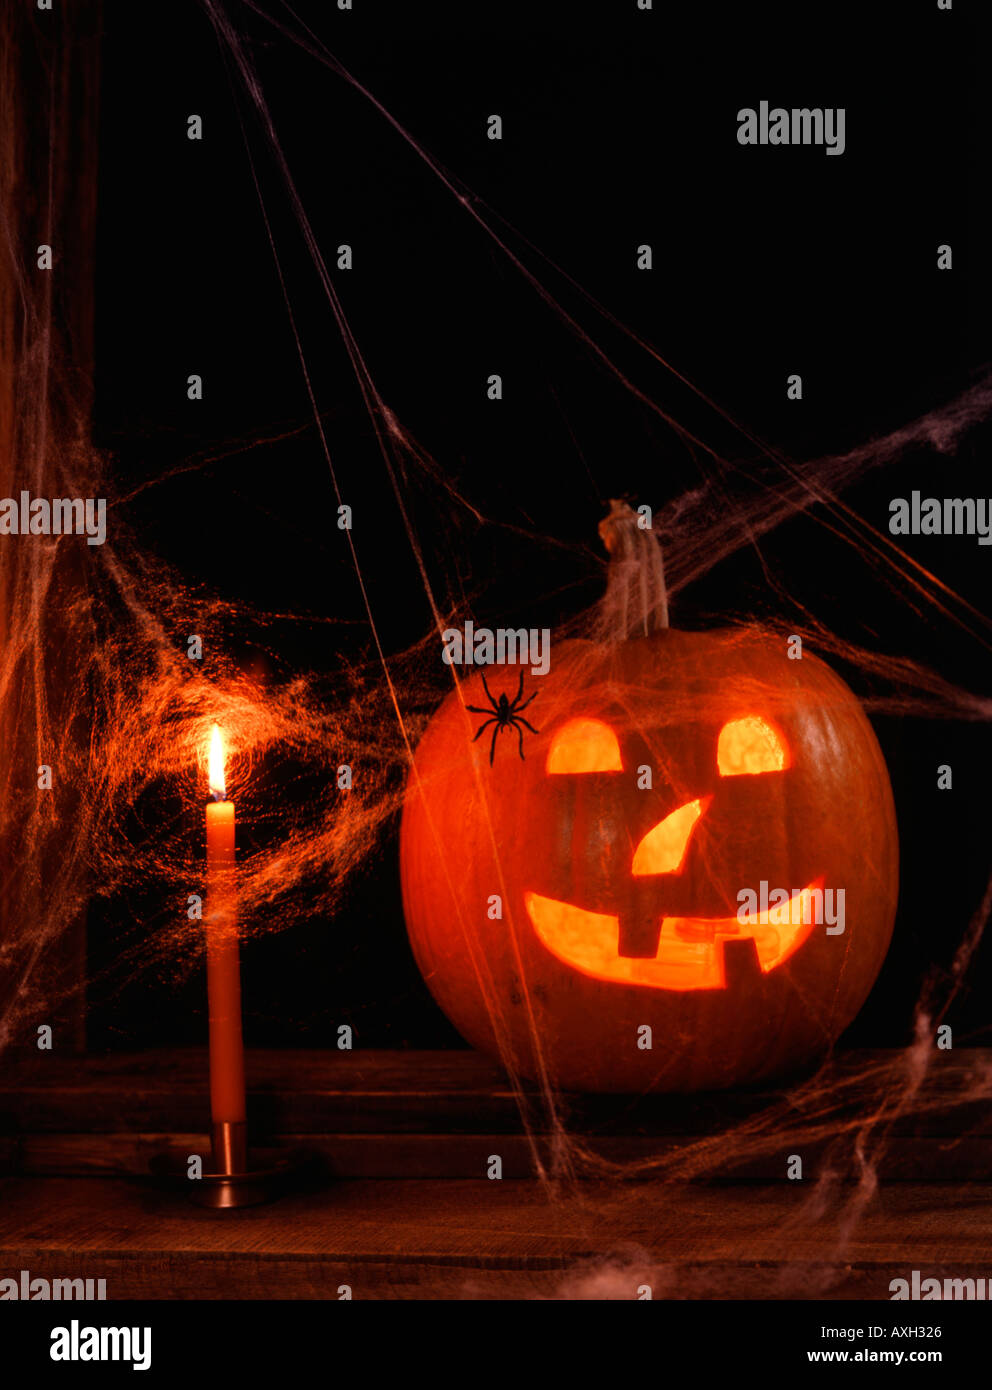 Grinning Jack O Lantern covered with spider webs and a spider with lighted candle nearby - Stock Image